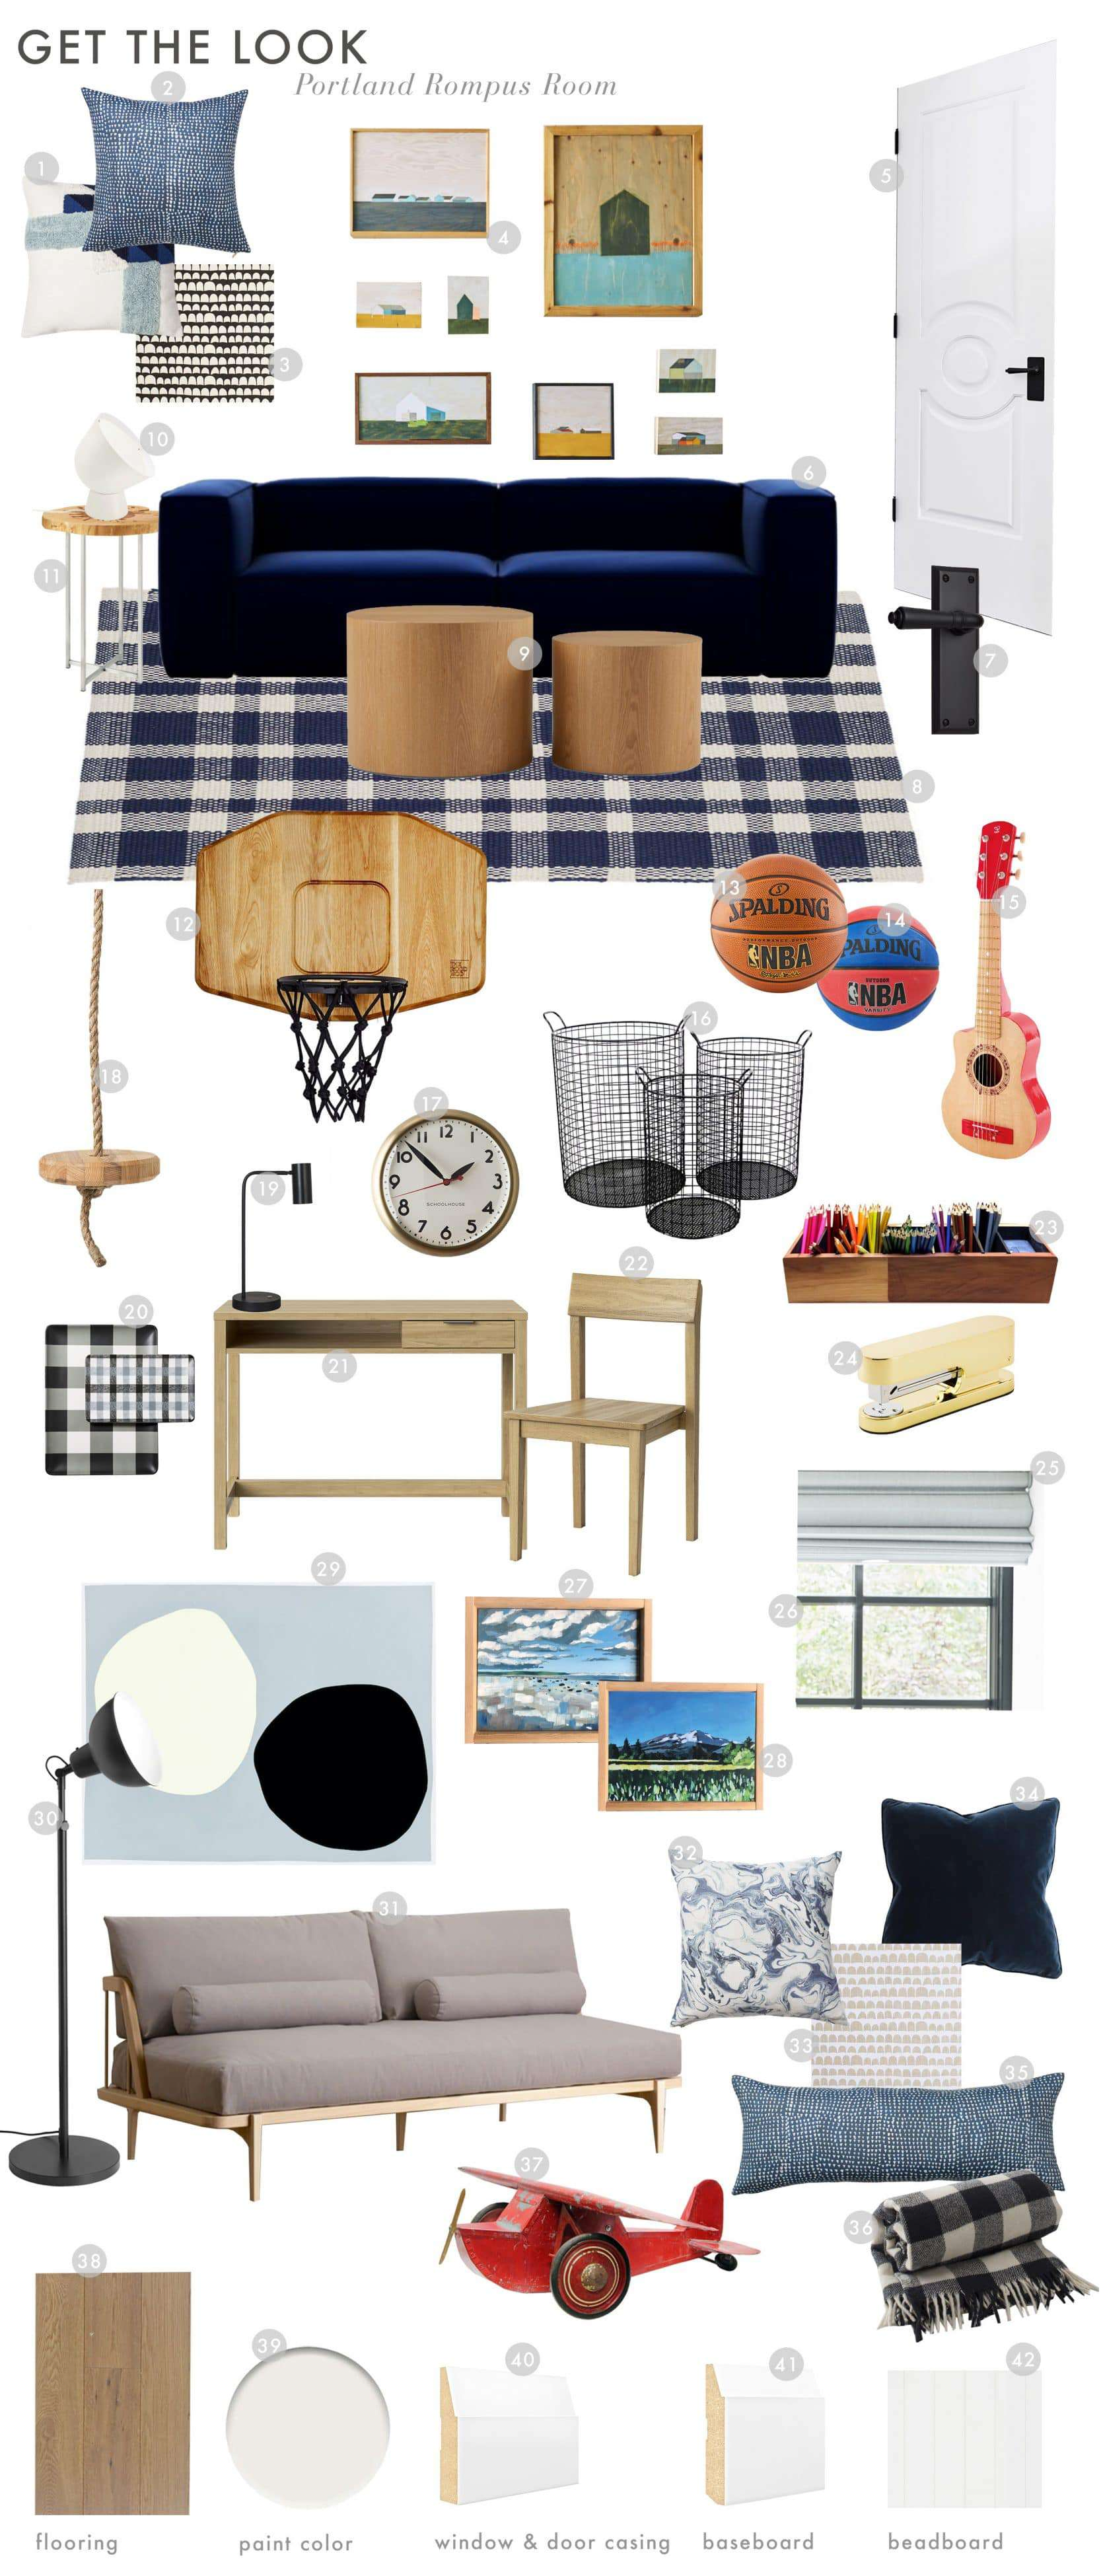 Emily Henderson Portland Project Rompus Room Get The Look1